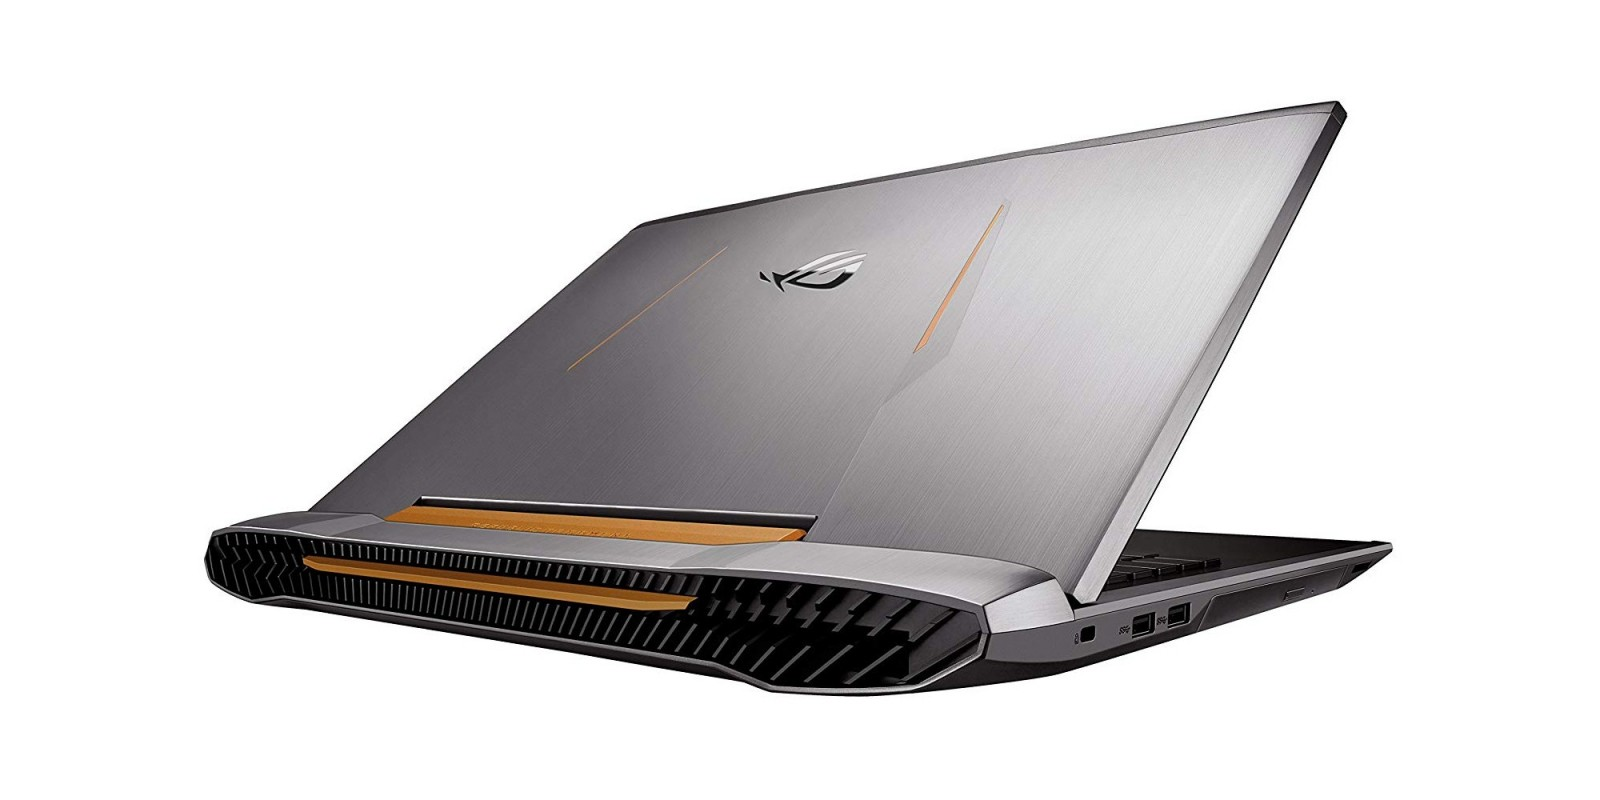 asus rog g752vl laptop – back